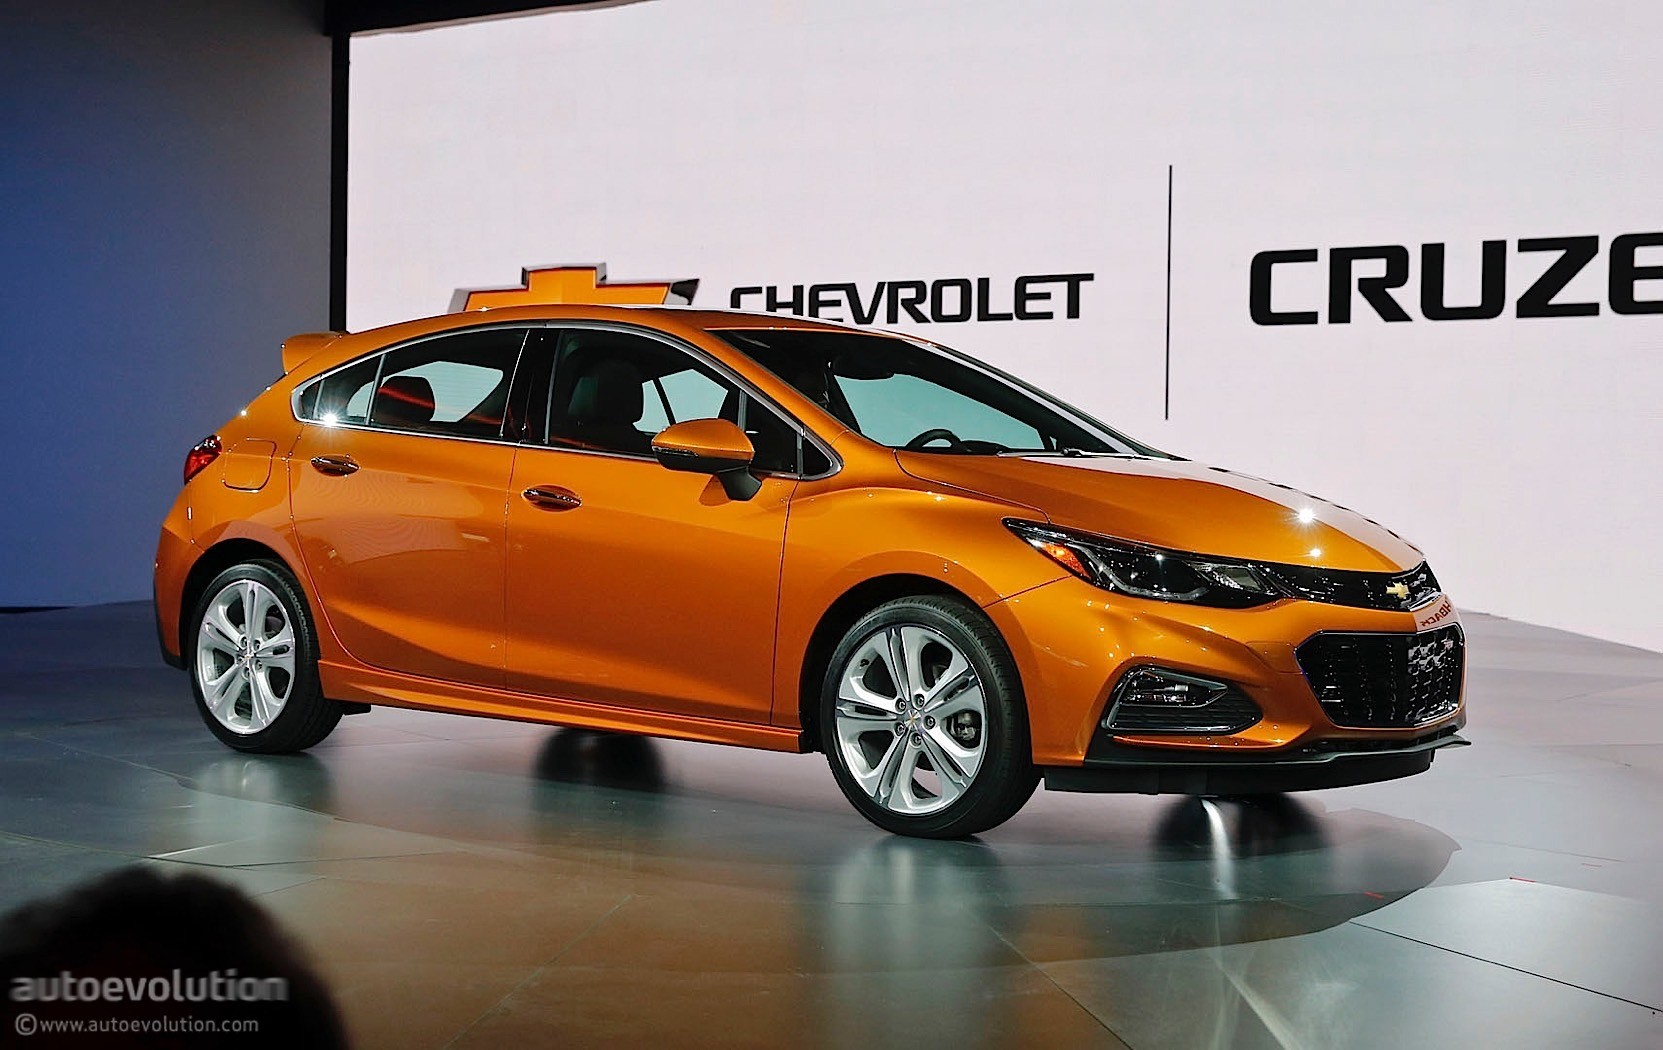 Used Chevy Equinox >> Chevrolet Cruze Diesel Confirmed for 2018 MY Roll-out, 50 MPG Highway Targeted - autoevolution